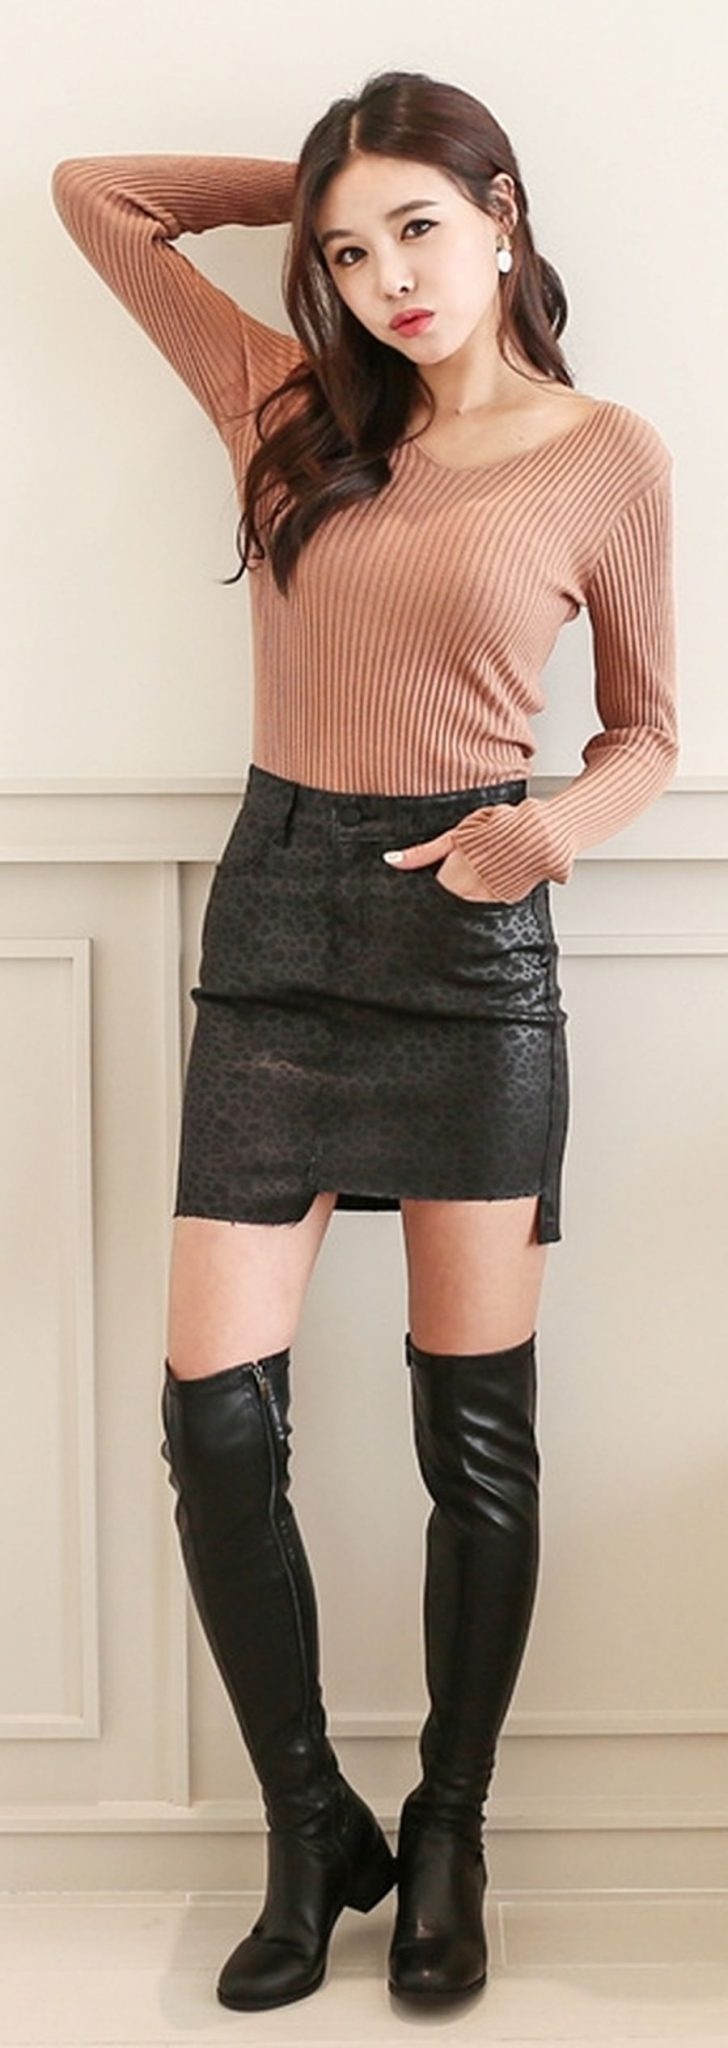 Inspiring skirt and boots combinations for fall and winter outfits 80